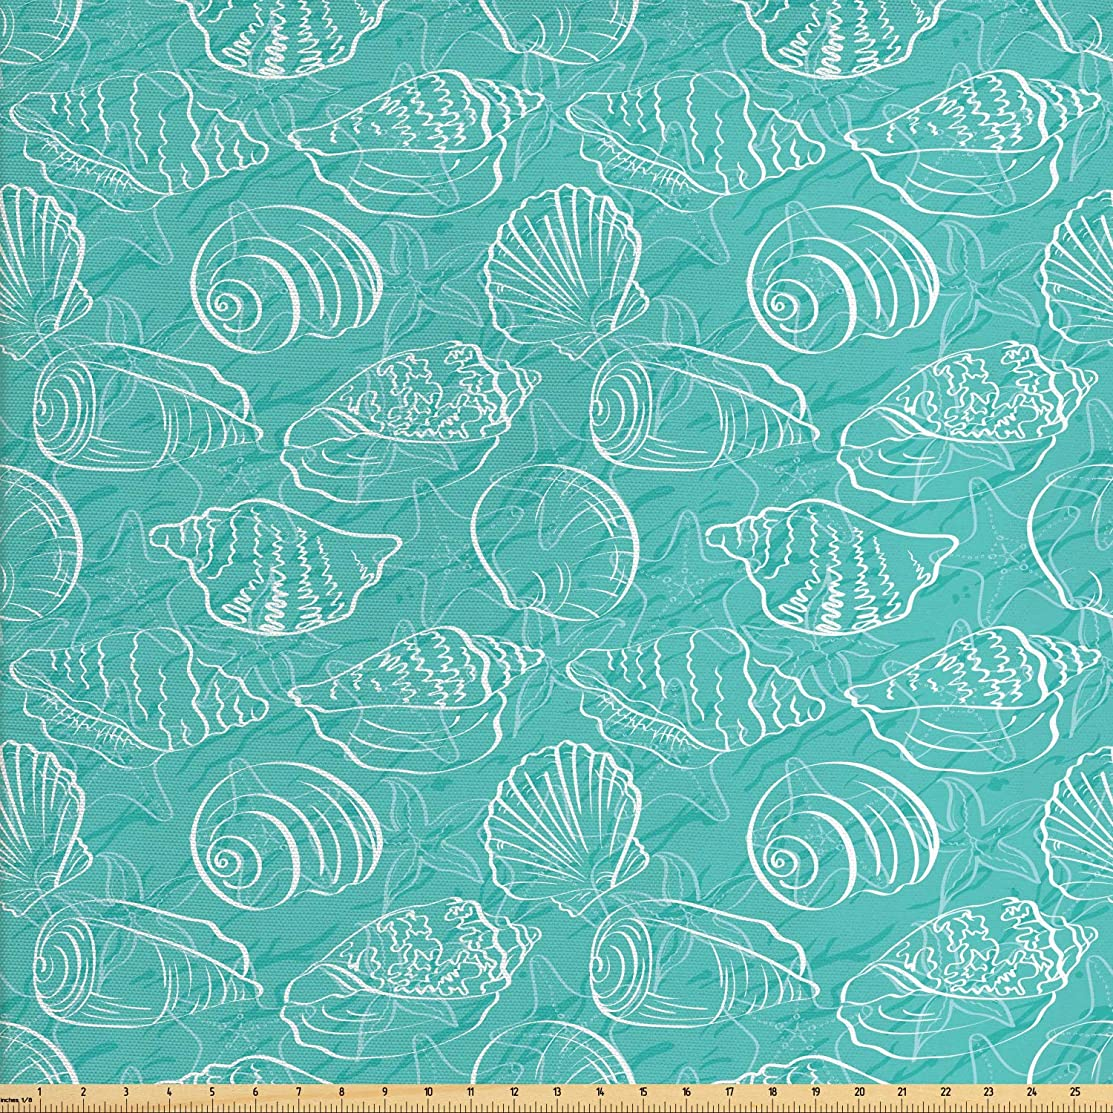 Ambesonne Sea Shells Fabric by The Yard, Doodle Style Marine Seashells Abstract Lines Background Sea Animals Pattern, Decorative Fabric for Upholstery and Home Accents, 3 Yards, Seafoam White